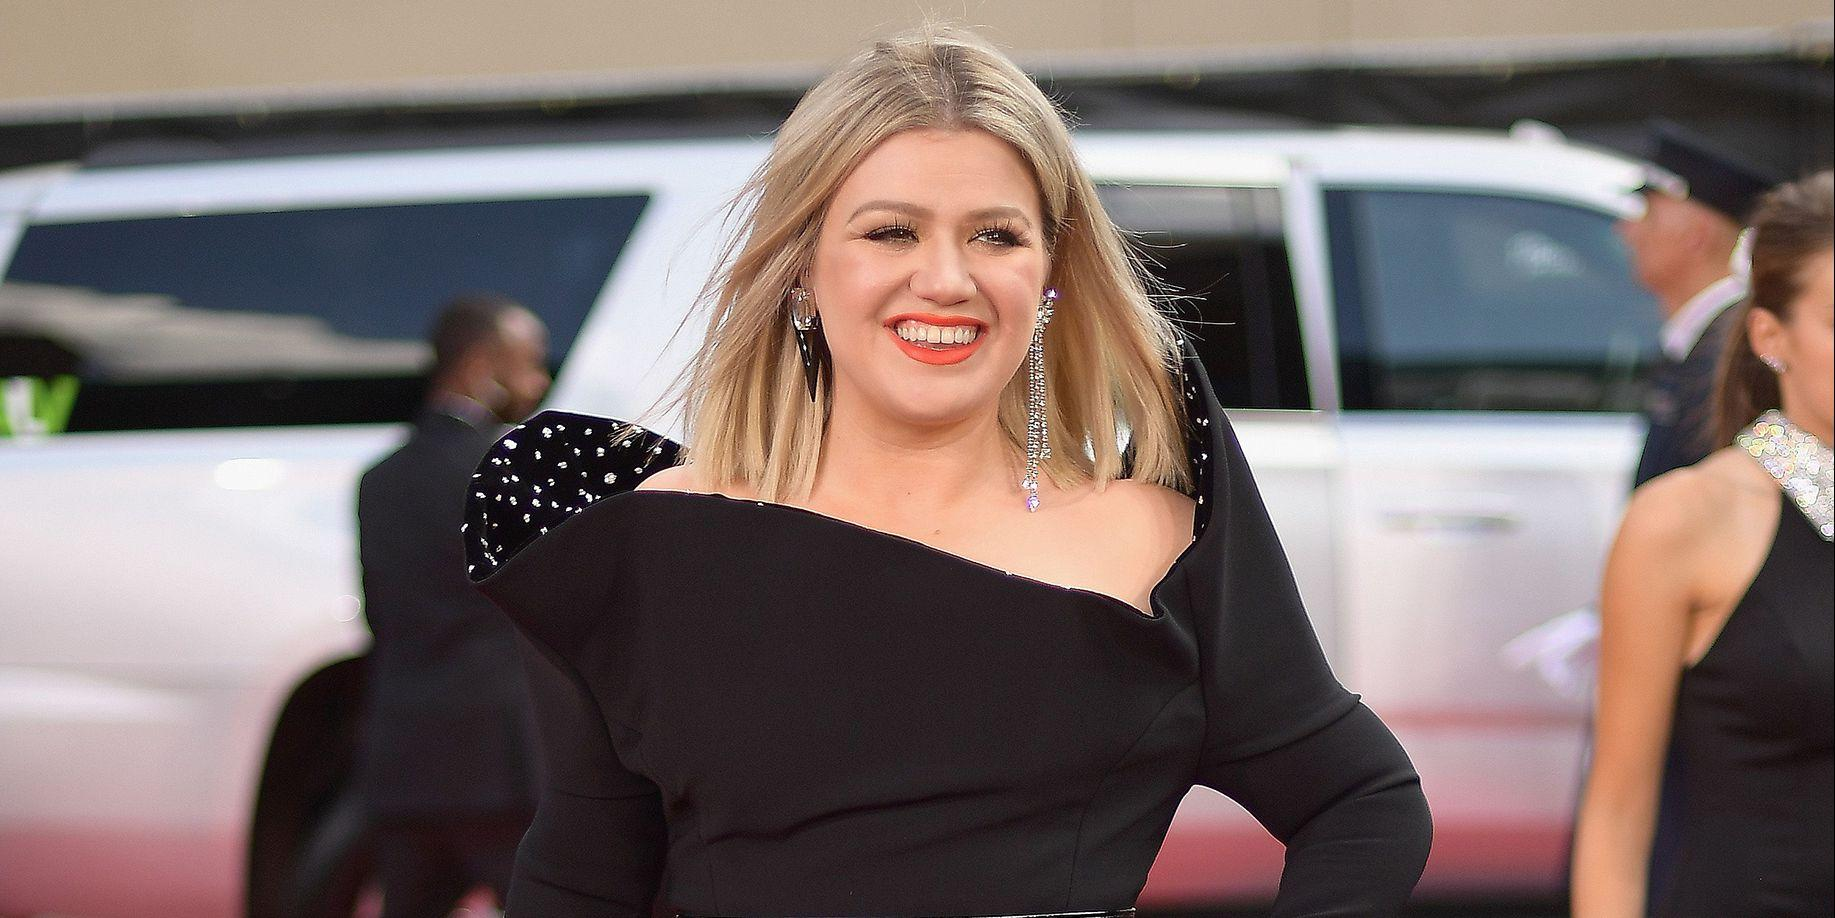 Kelly Clarkson Just Revealed The Hilarious Secret To Her Apparent Weight Loss